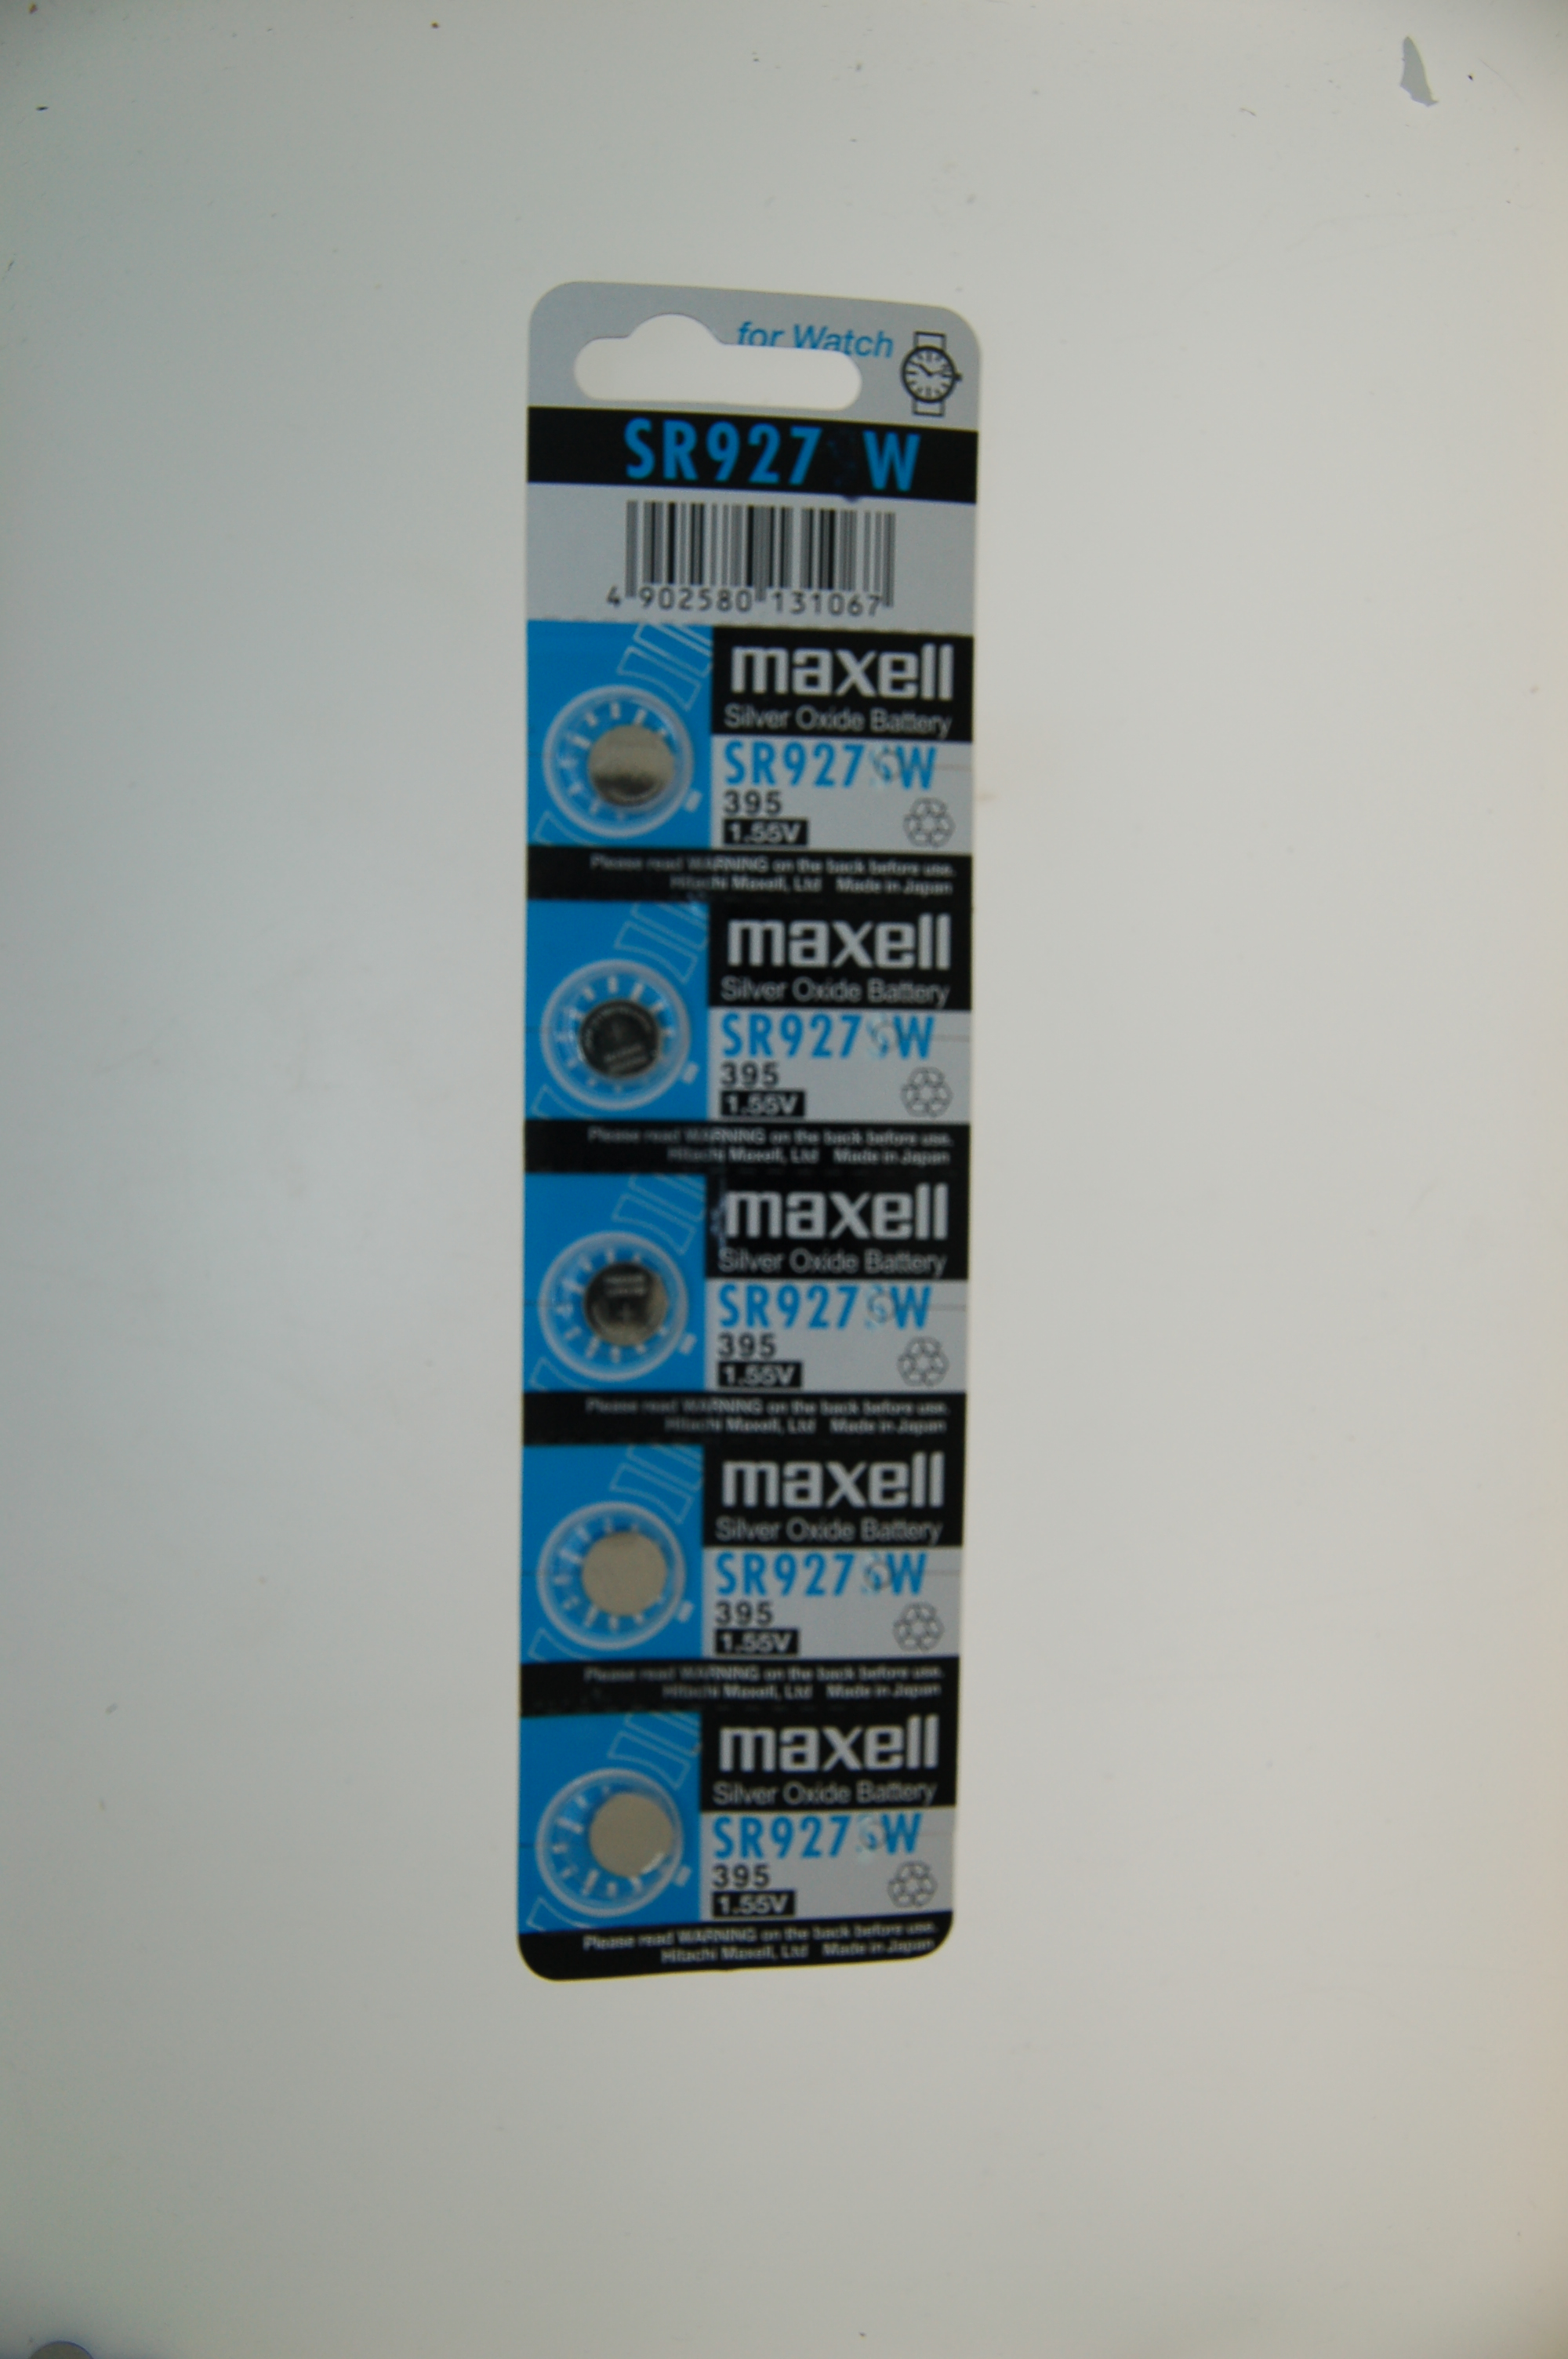 Maxell Siilver Oxide Battery SR927W